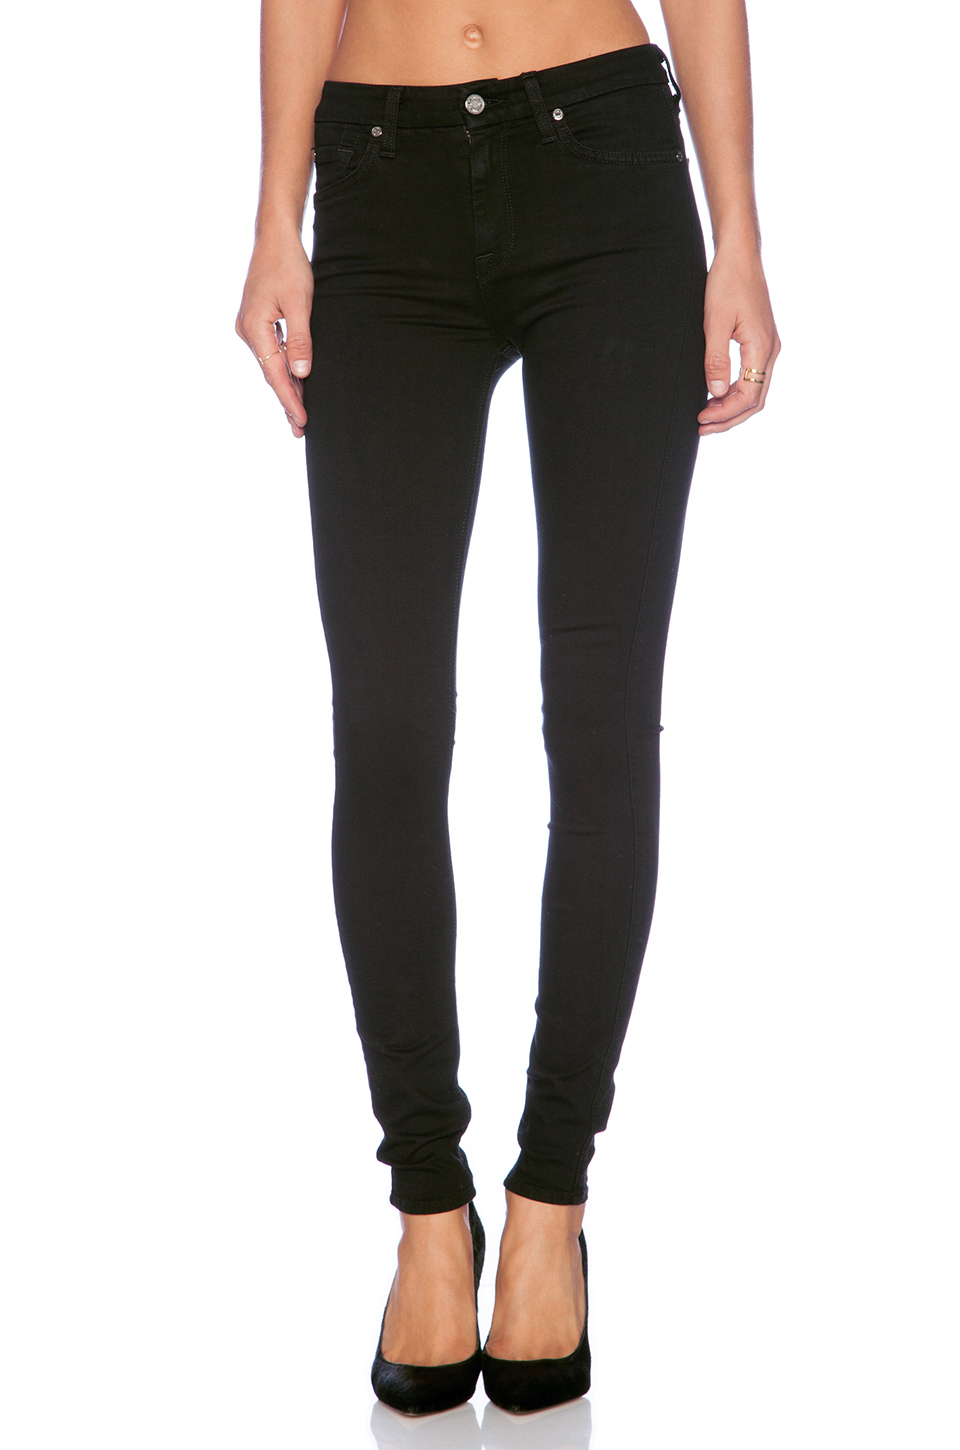 7 for all mankind the high waist skinny in slim illusion luxe black from revolveclothing.com